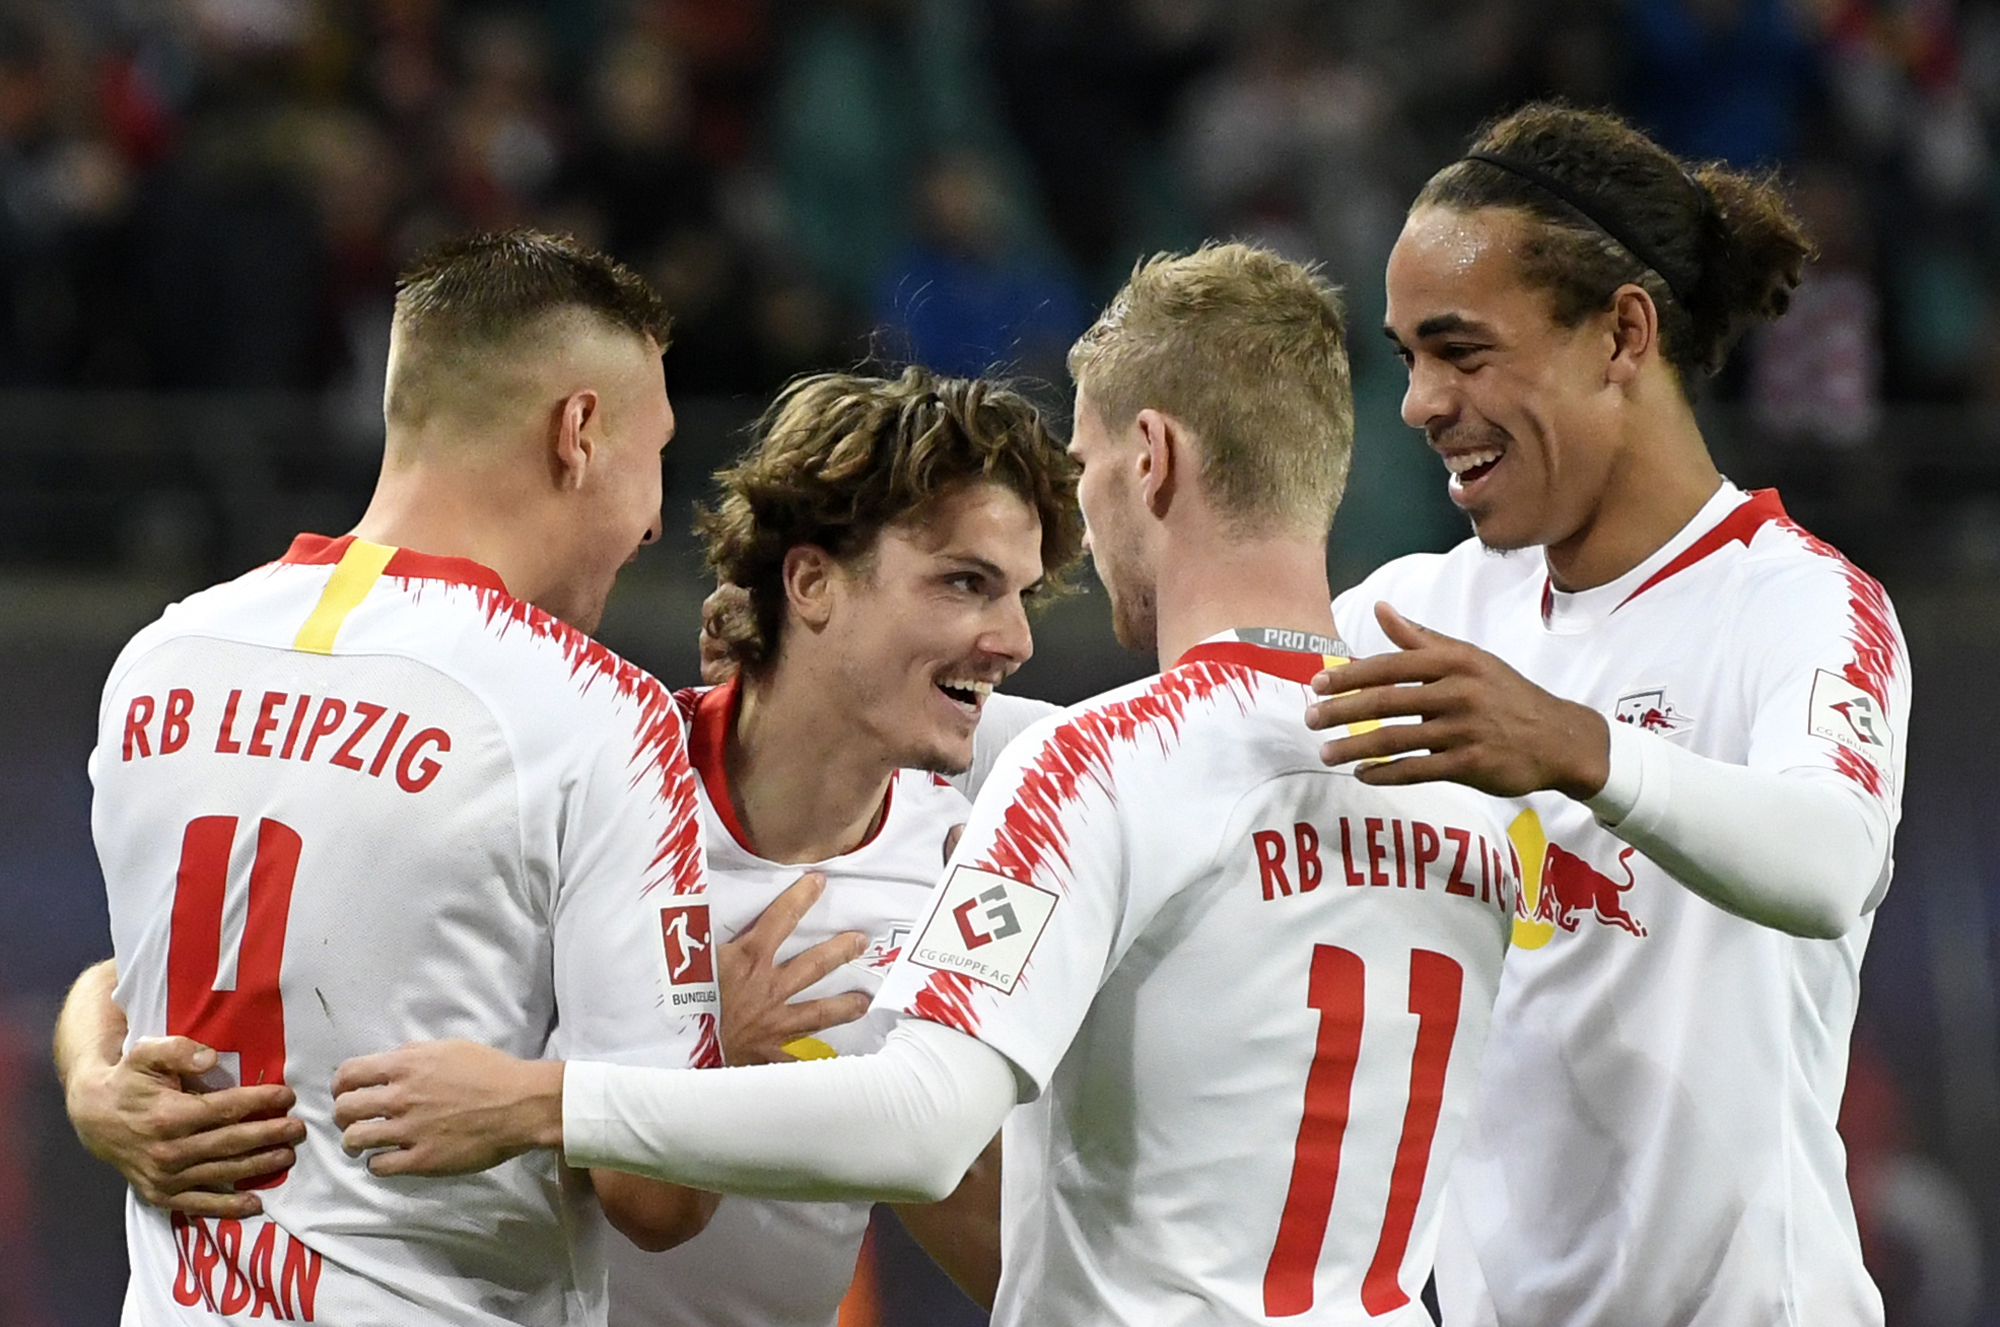 Leipzig routs promoted Nuremberg 6-0 despite missed penalty